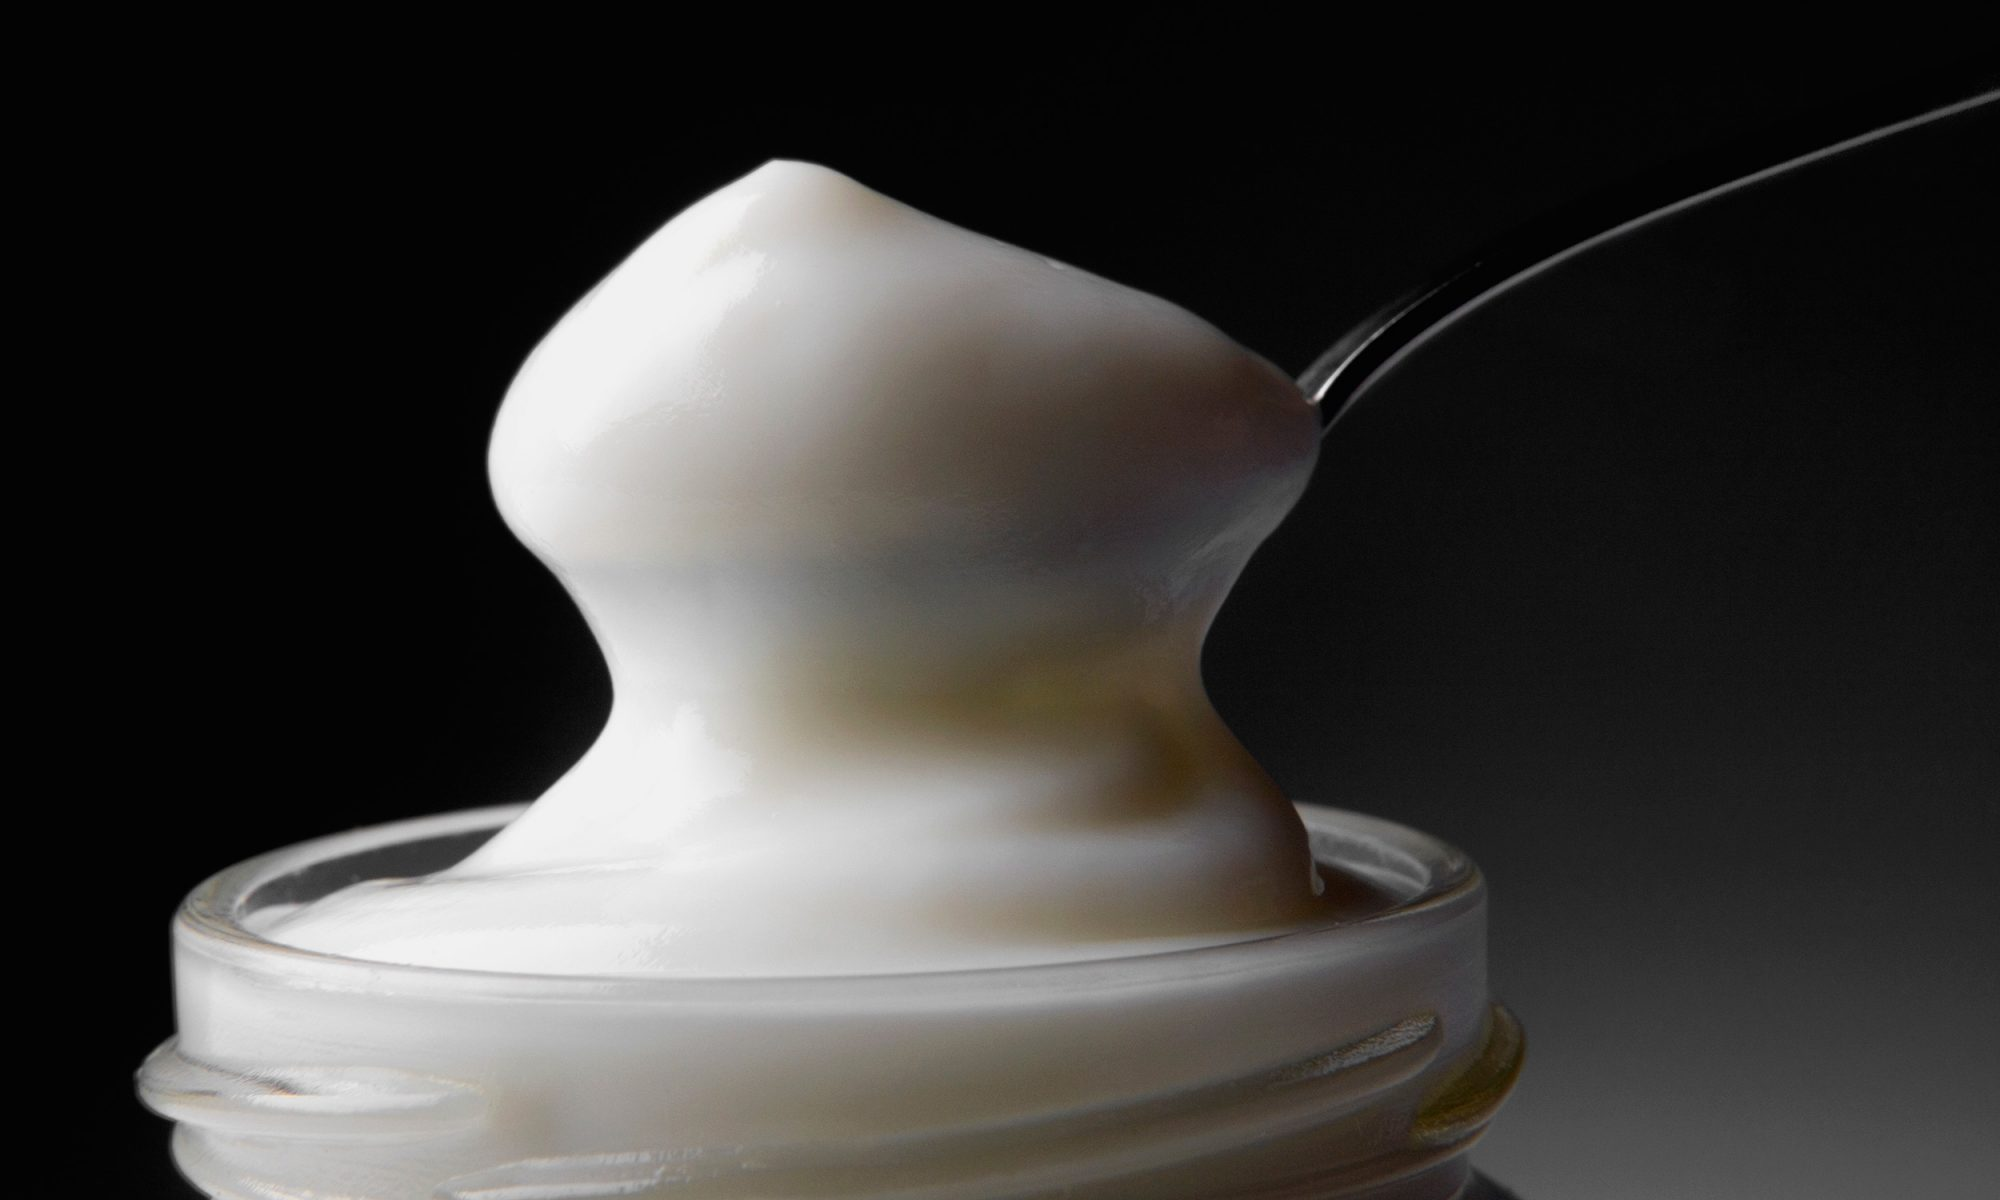 mayonnaise and spoon